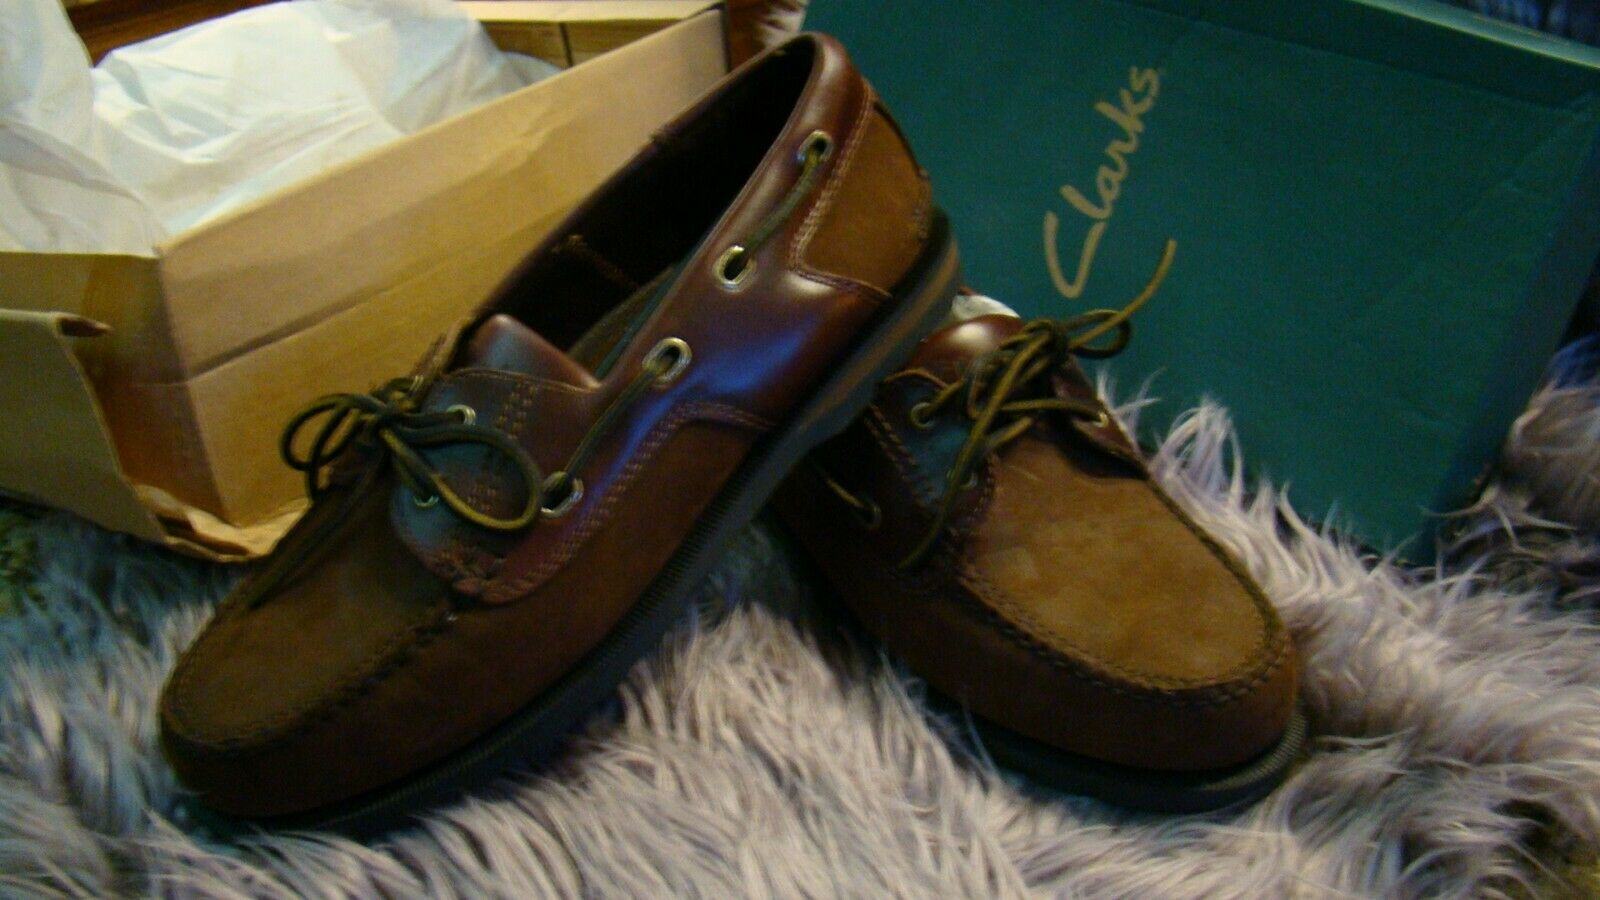 Brown Boat Shoes Nubuck Leather Size